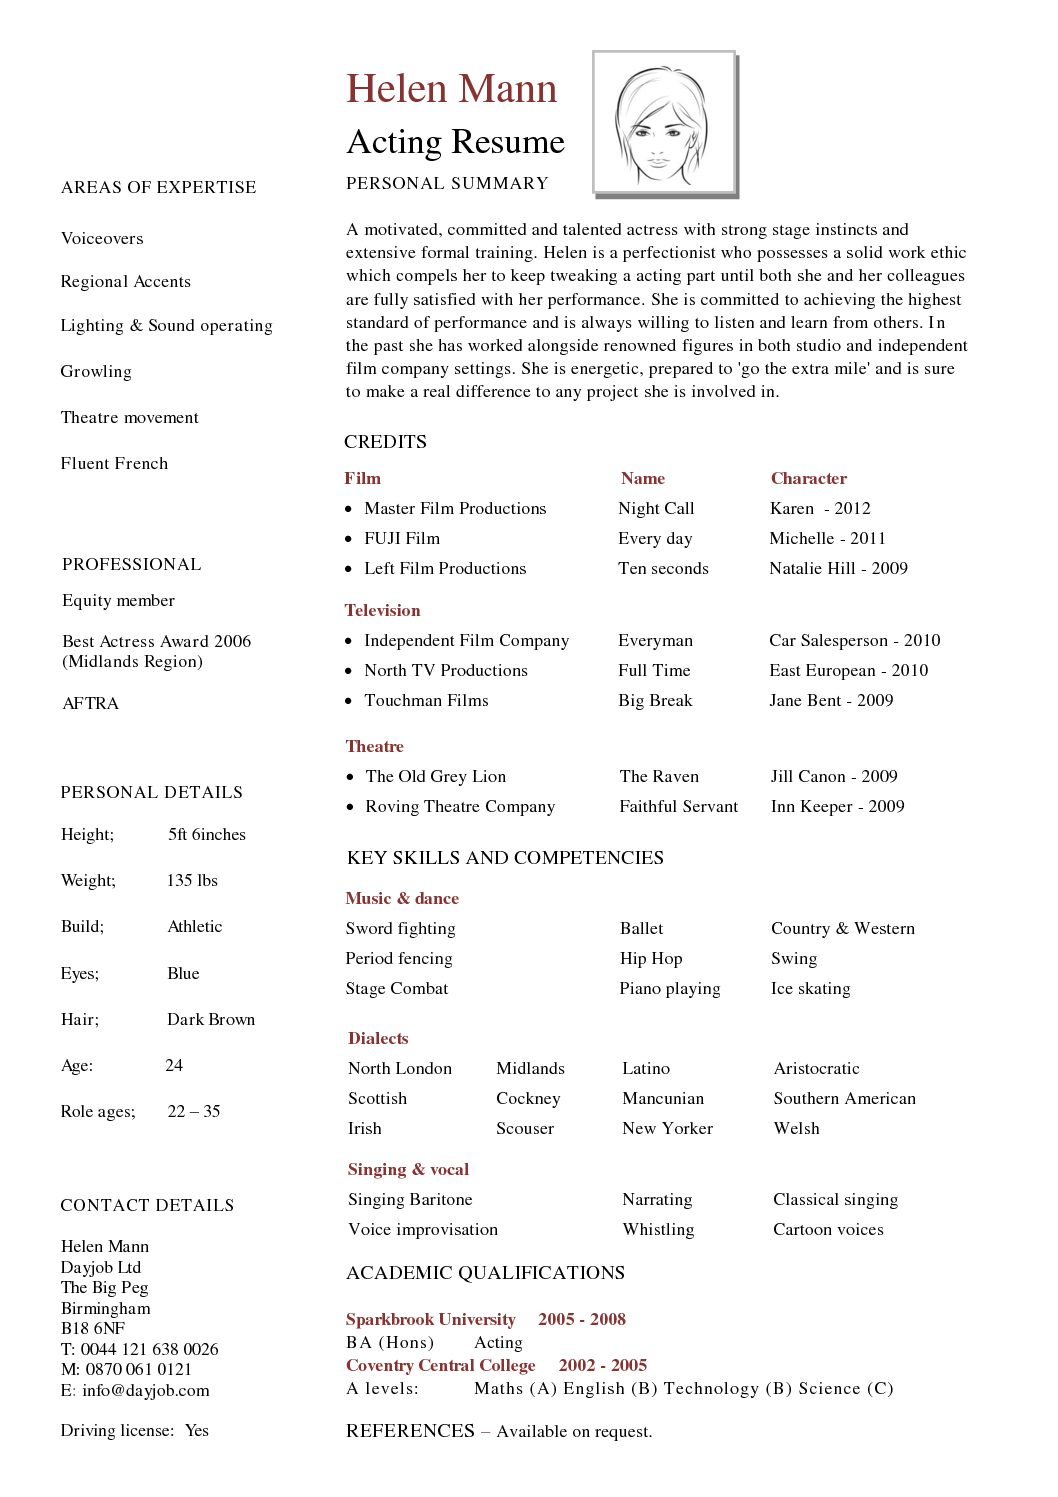 Free Actor Resume Template And How To Write Yours Properly